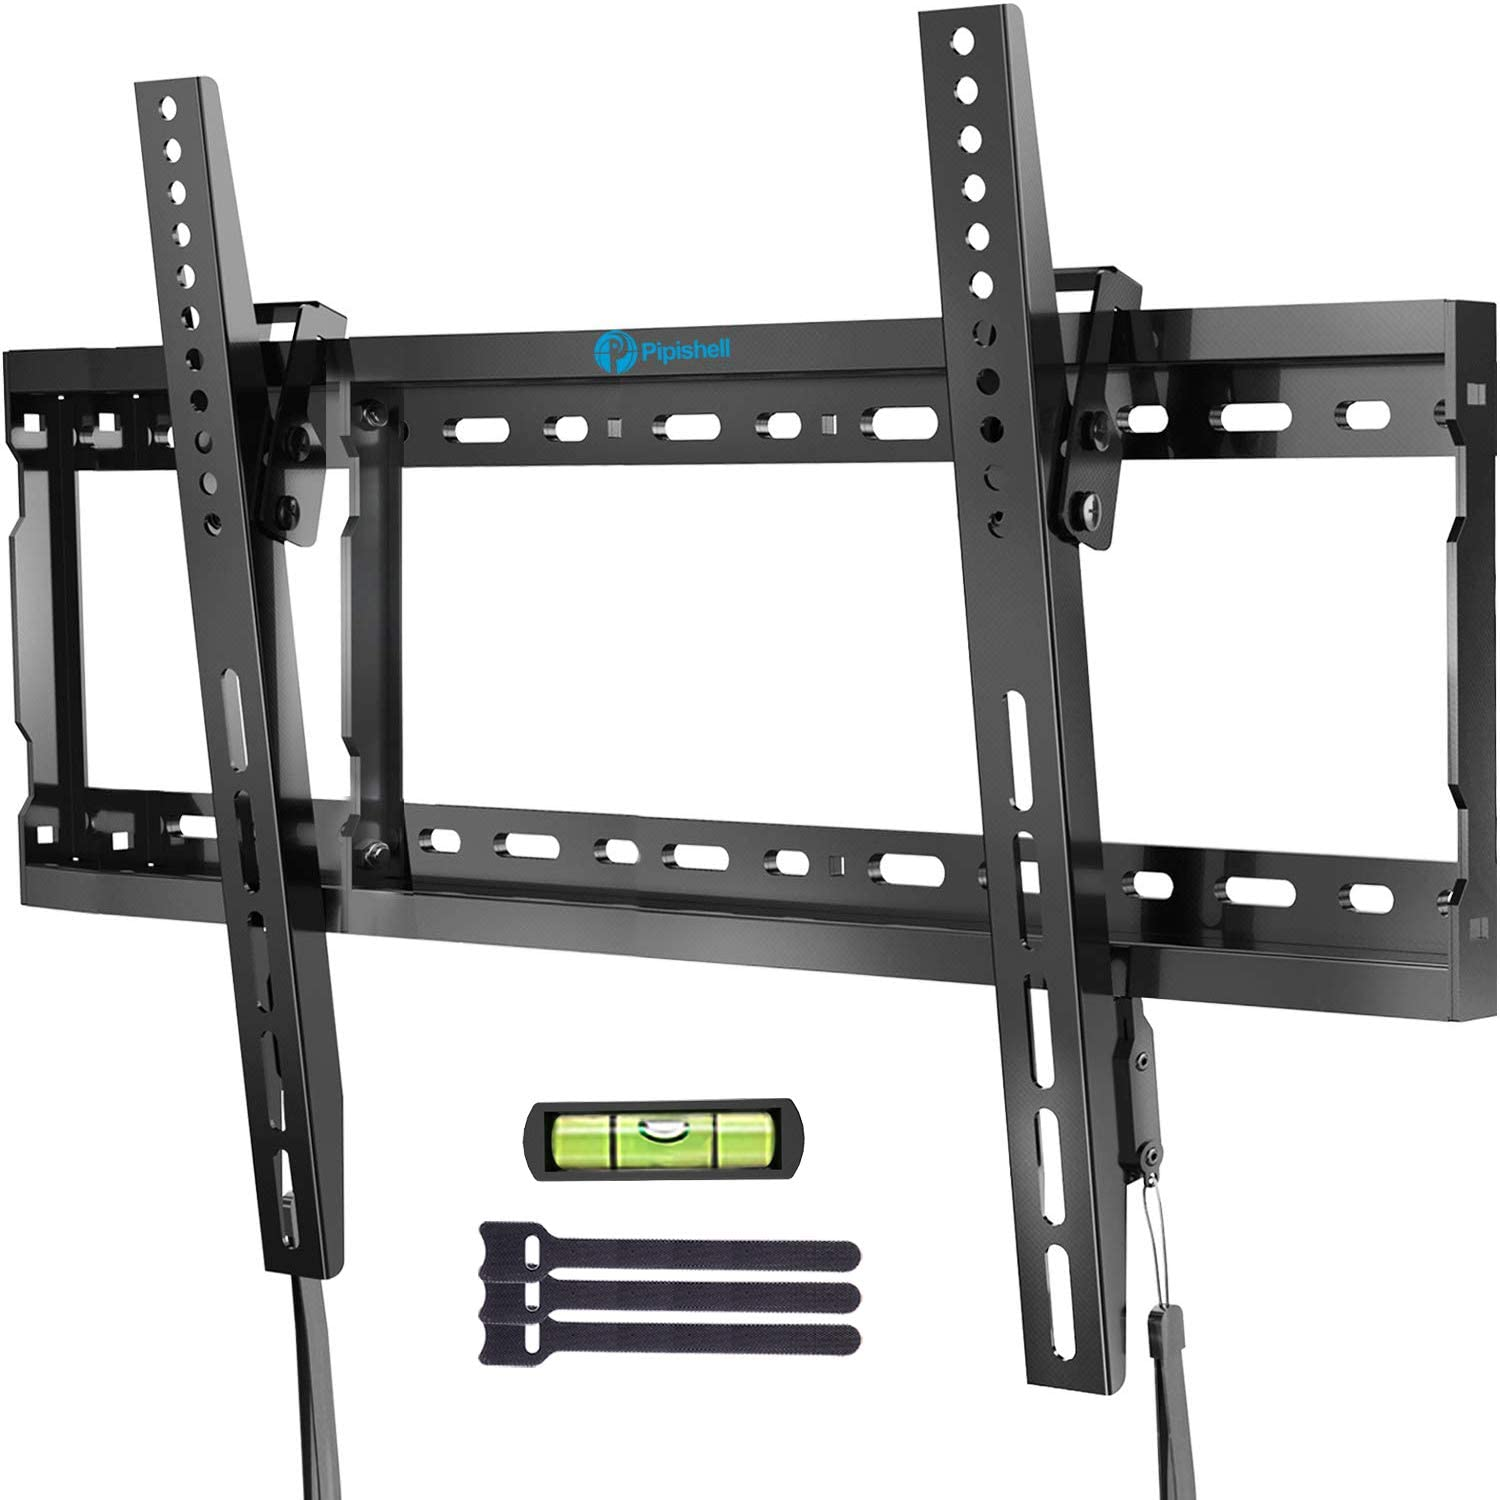 Best Wall Mount For Samsung 65 inch TV